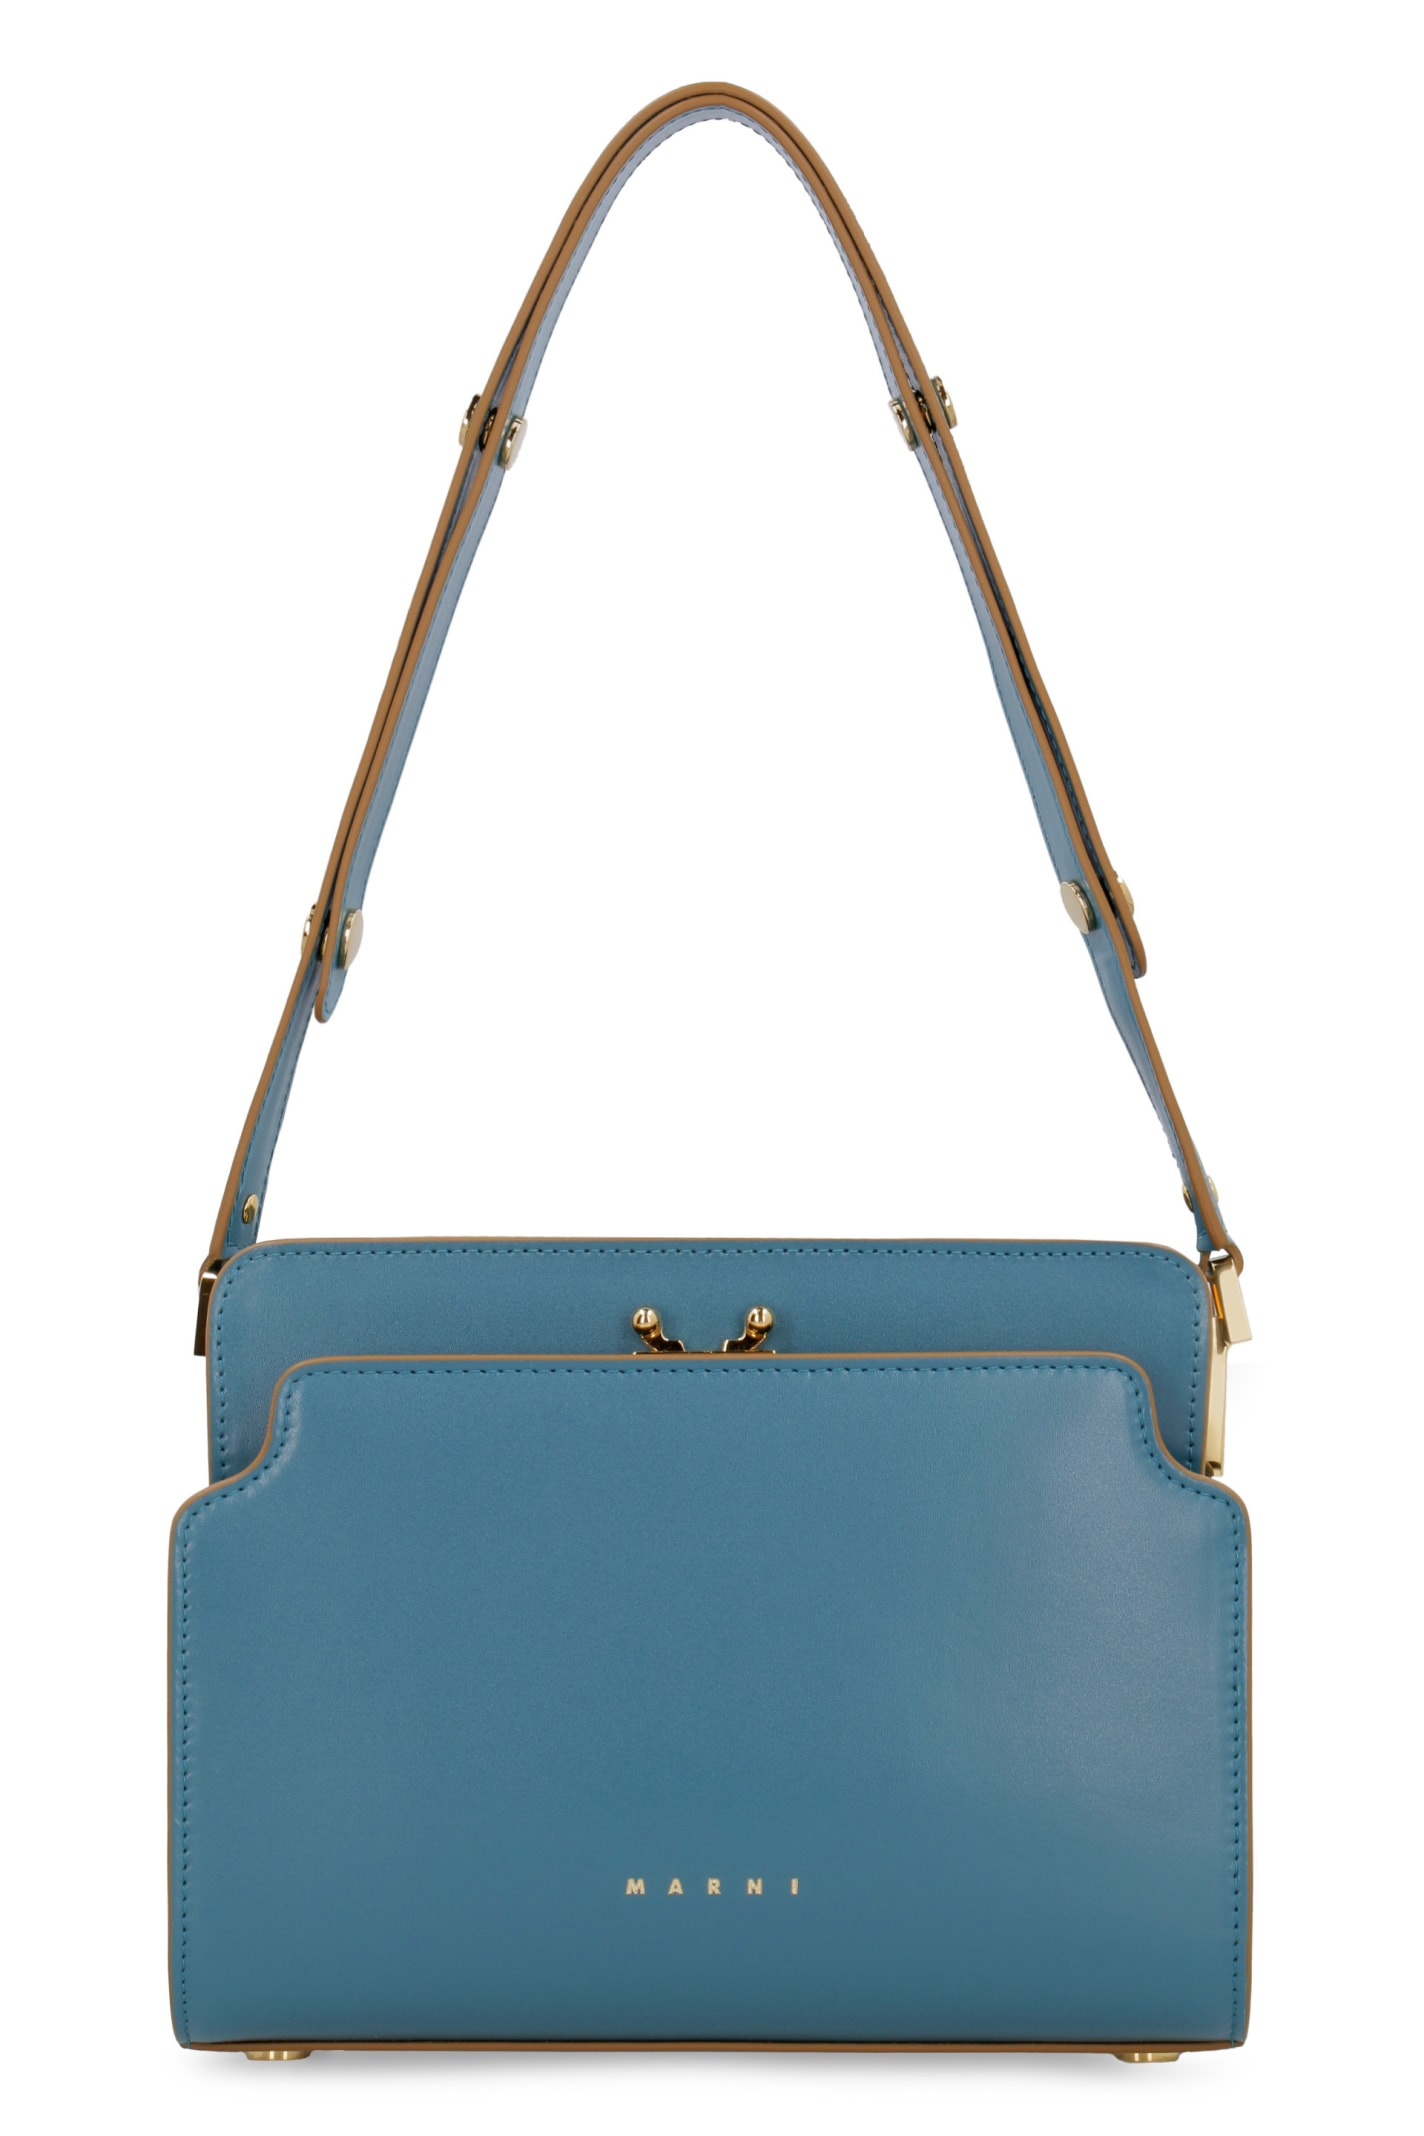 Marni Trunk Reverse Leather Shoulder Bag